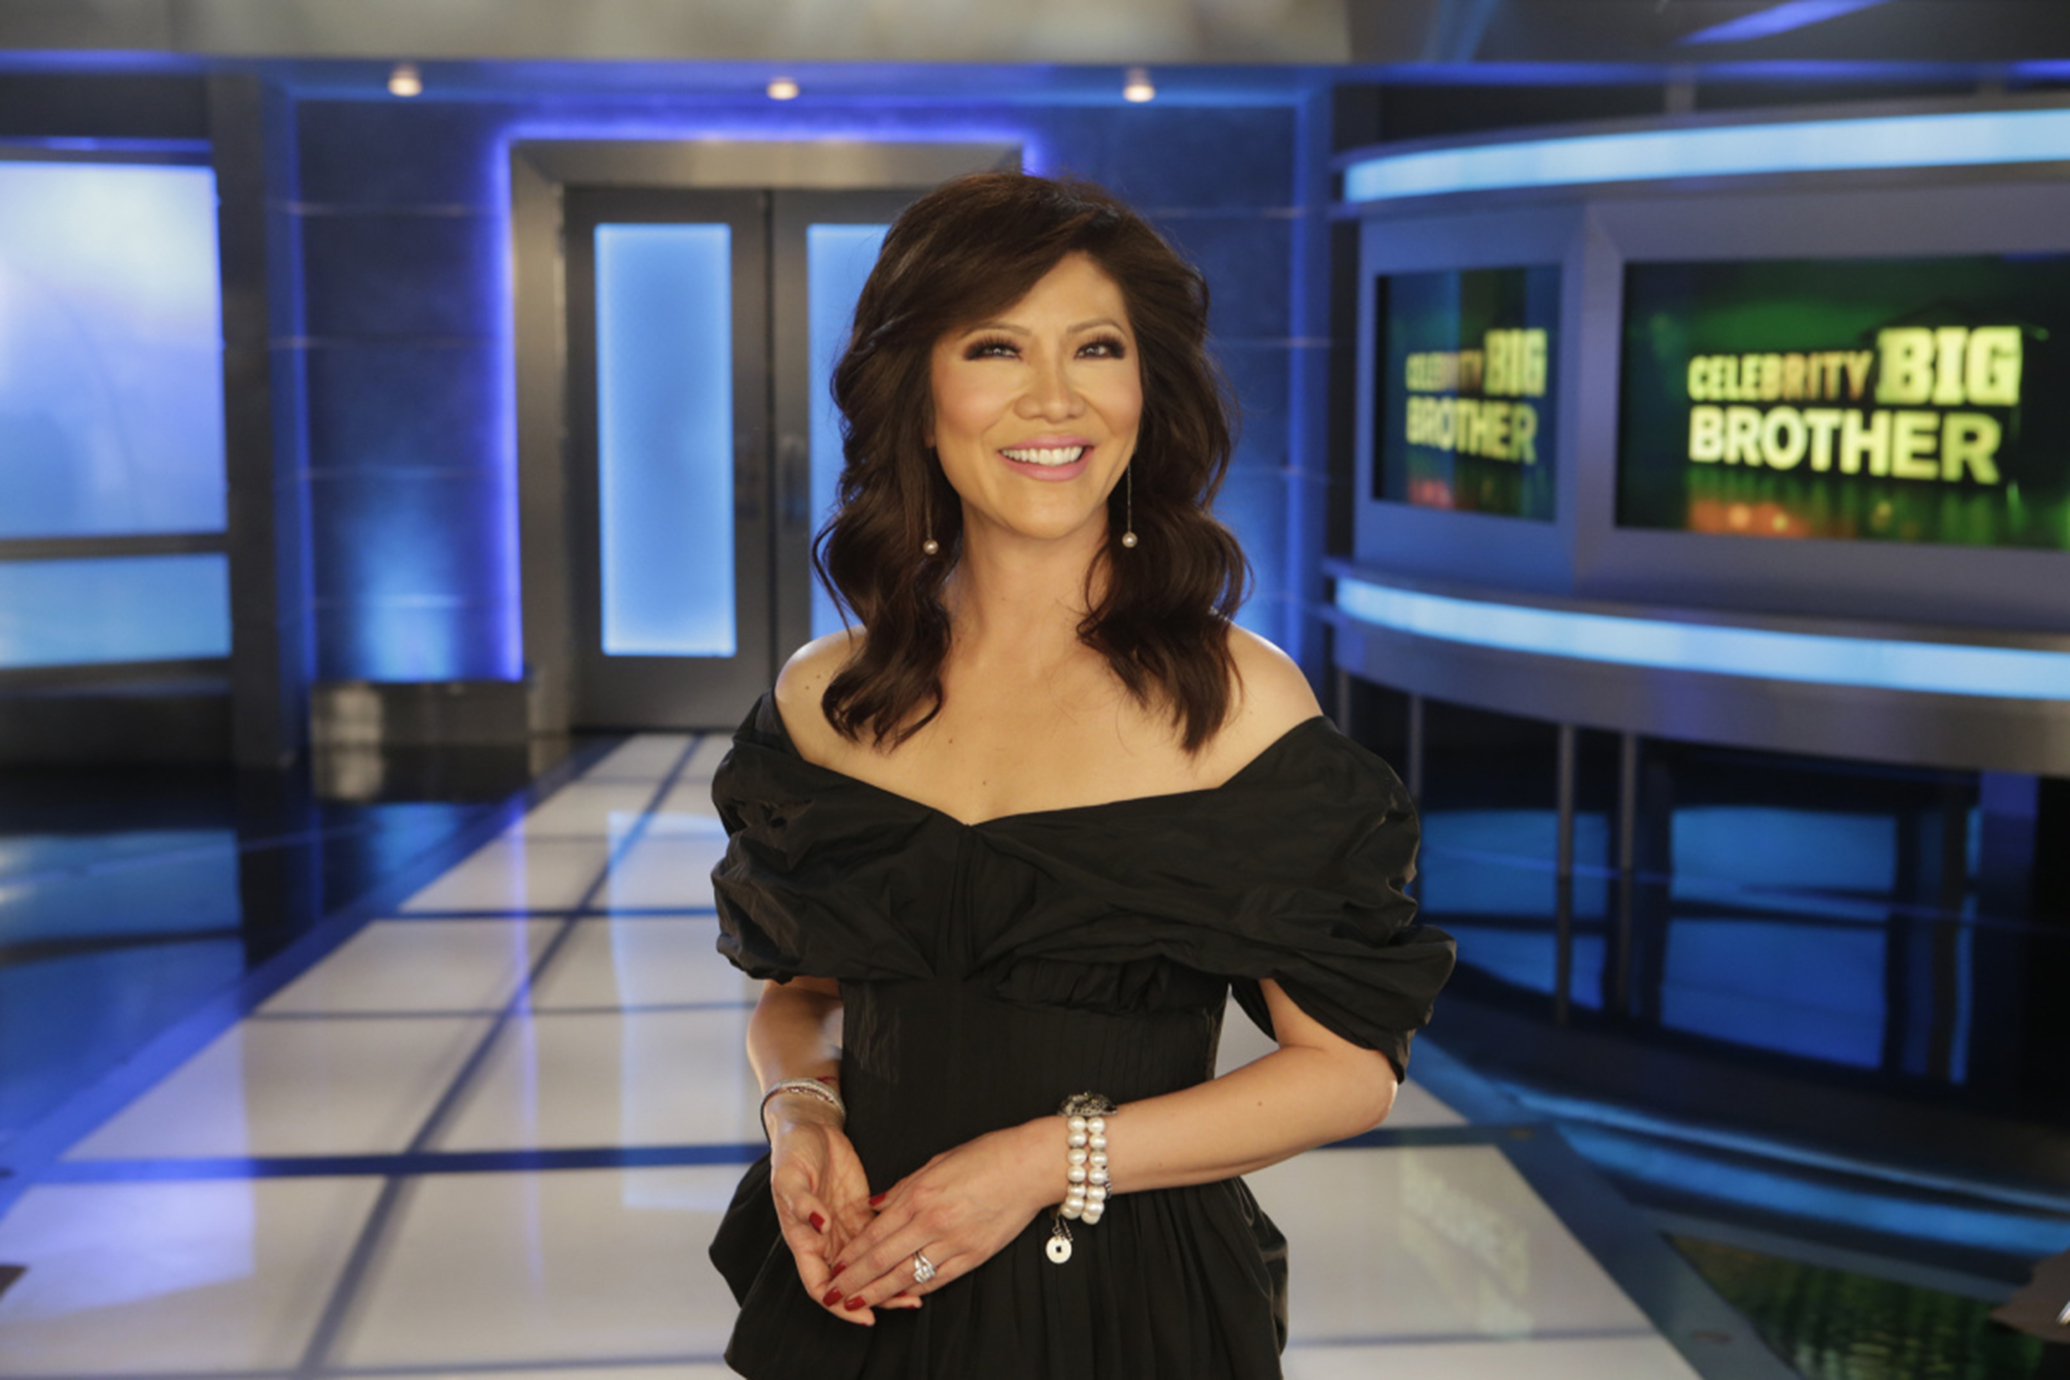 Julie Chen, Big Brother 22, Big Brother All Stars, Big Brother Season 22, CBS, ViacomCBS, Pandemic, Coronavirus, Coronavirus Pandemic, COVID-19